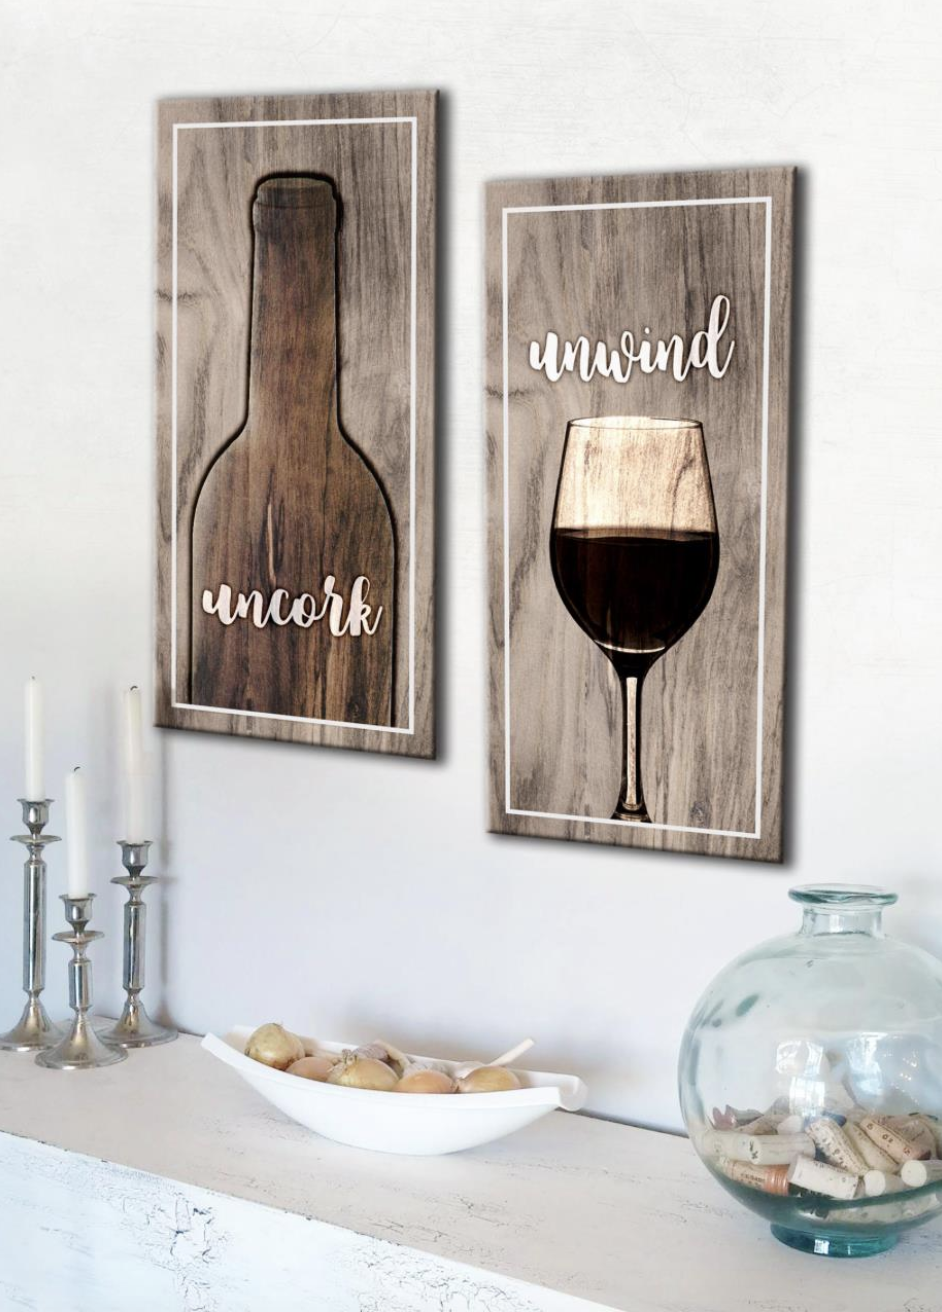 Home Wall Art Todays Little Moments Become Tomorrows Precious Memories Wood Frame Ready To Hang In 2020 Kitchen Decor Wall Art Wine Wall Decor Wine Decor Kitchen